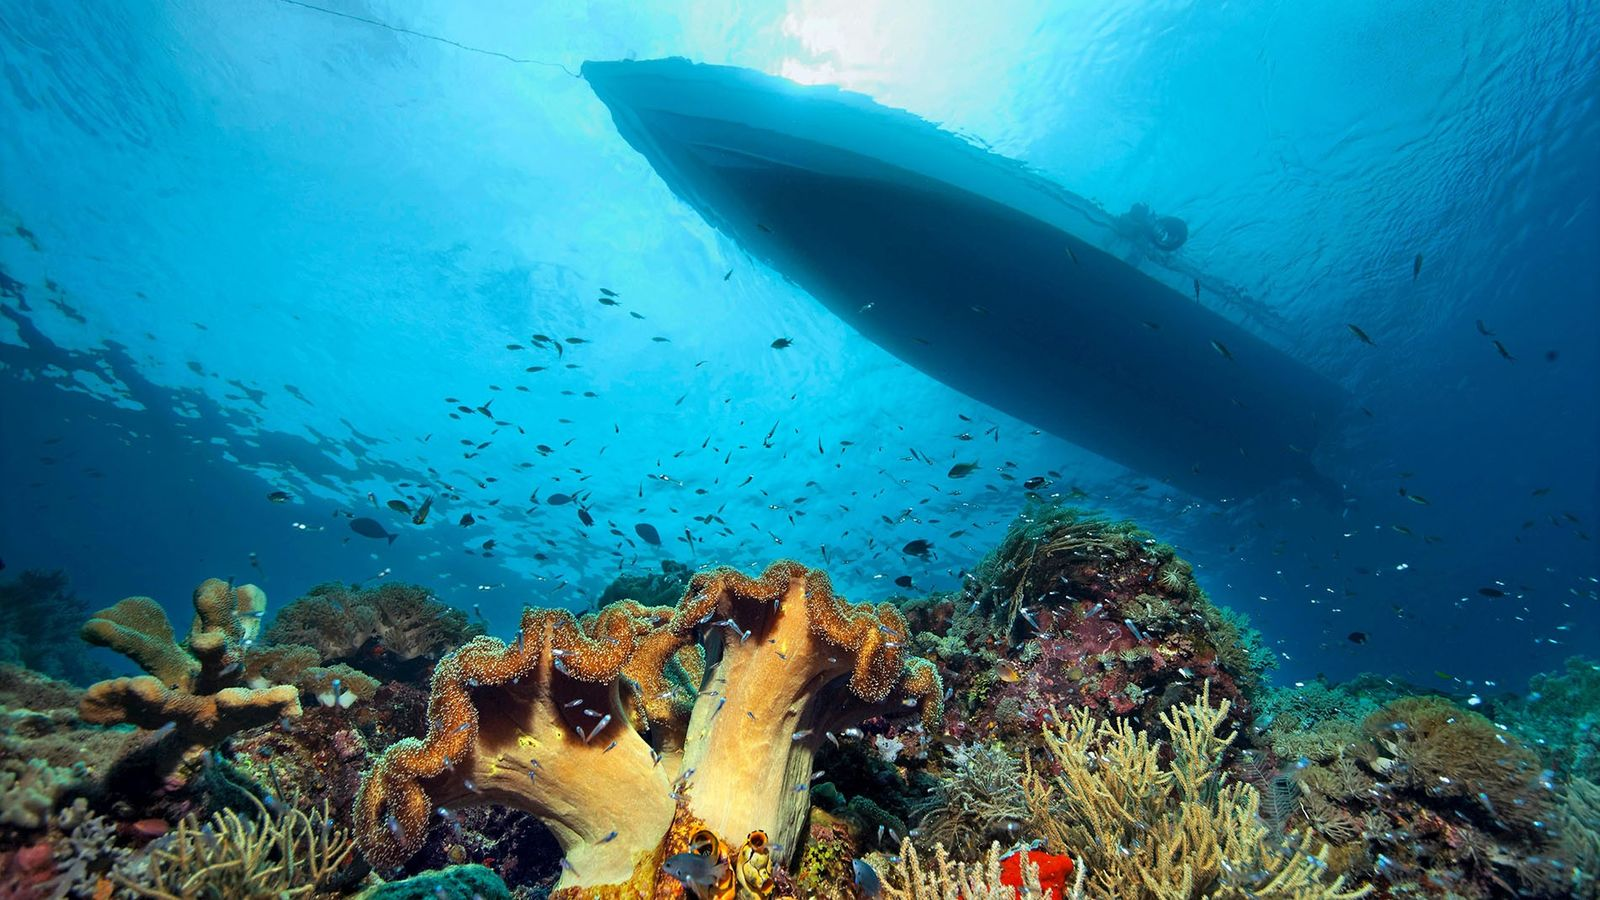 The largest reef system in the world, the Great Barrier Reef stretches for over 1,400 miles. ...